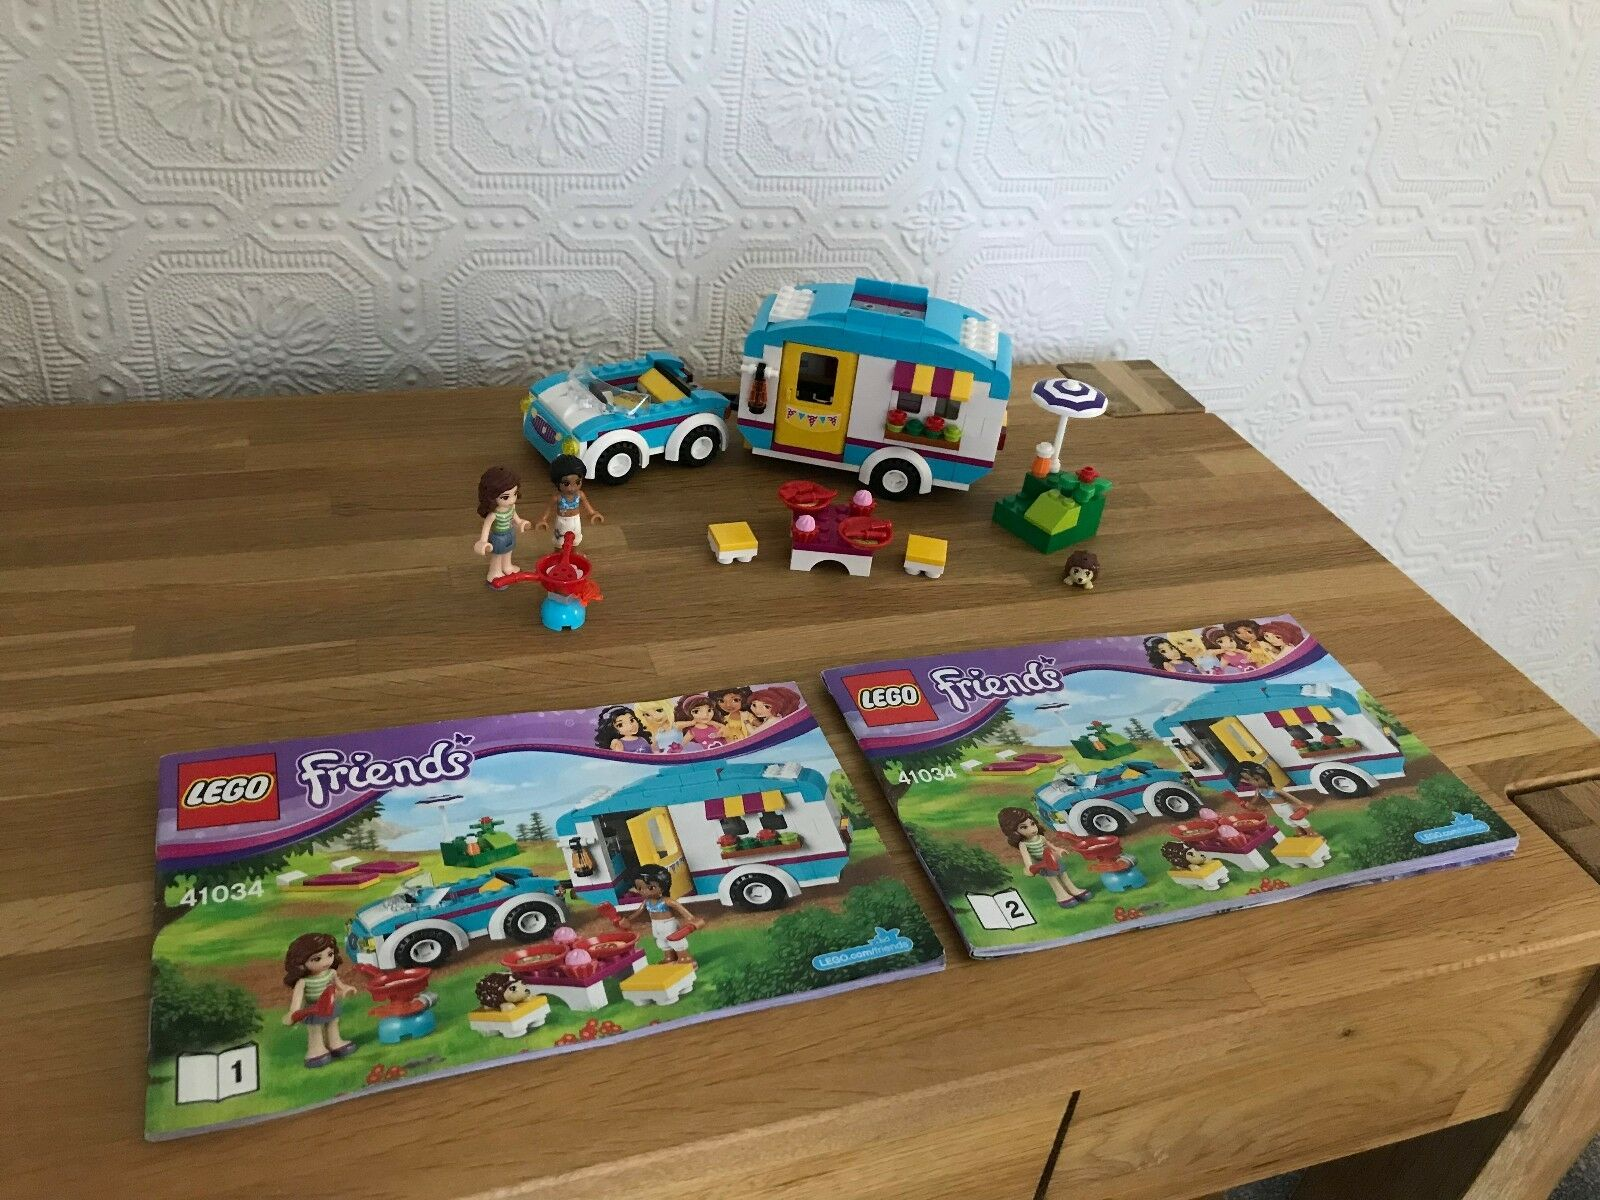 Lego Friends 41034 & 41026 (2 Sets in Total) 100% Complete,Instructions,No boxes